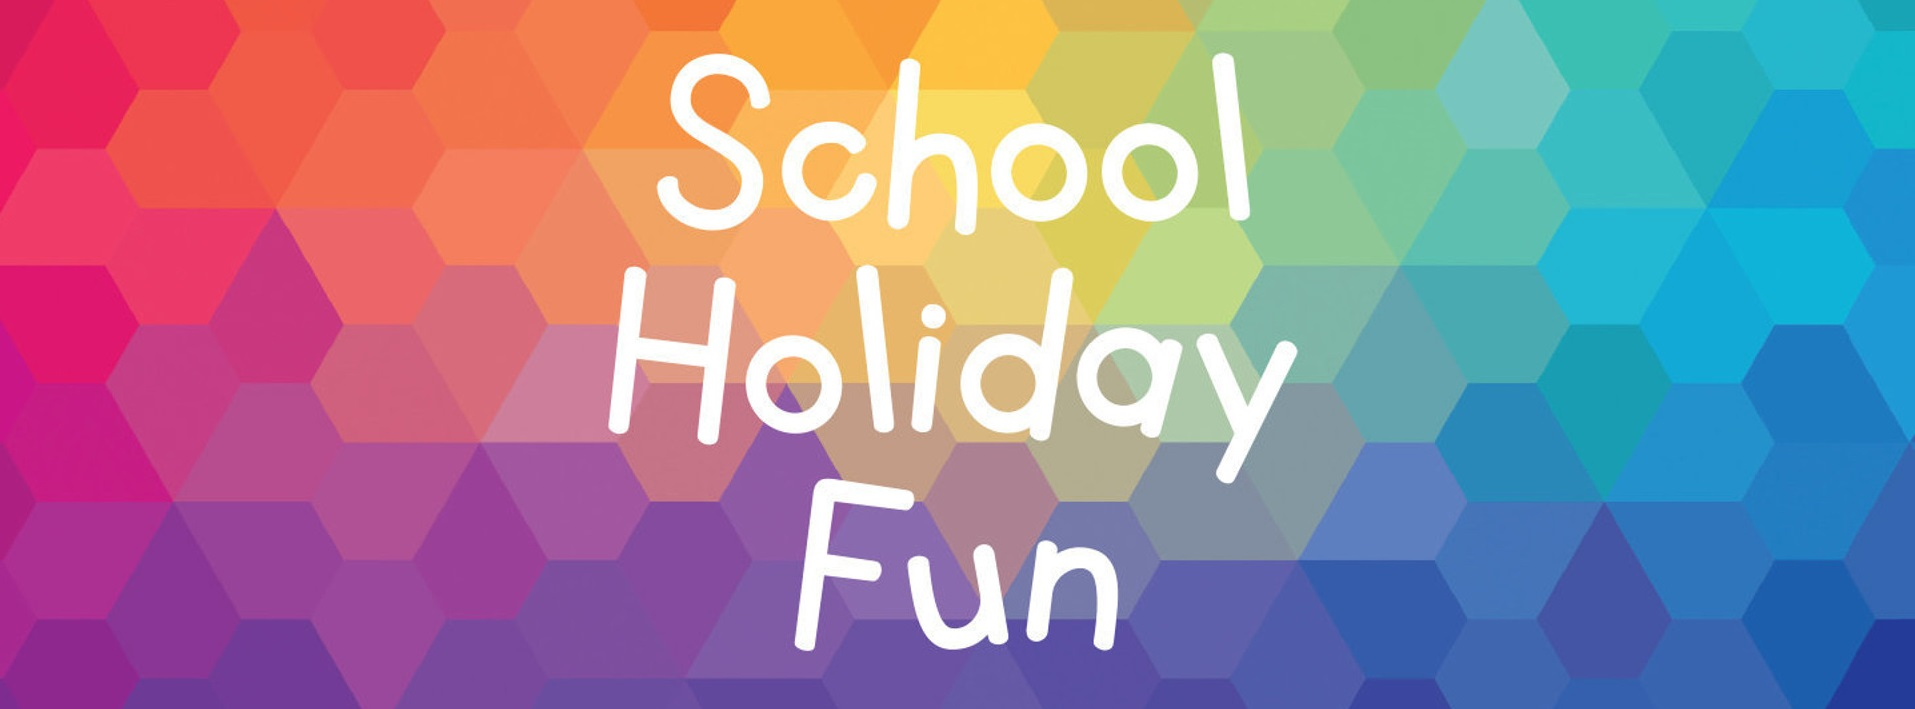 School Holiday Fun Image 1920x1080